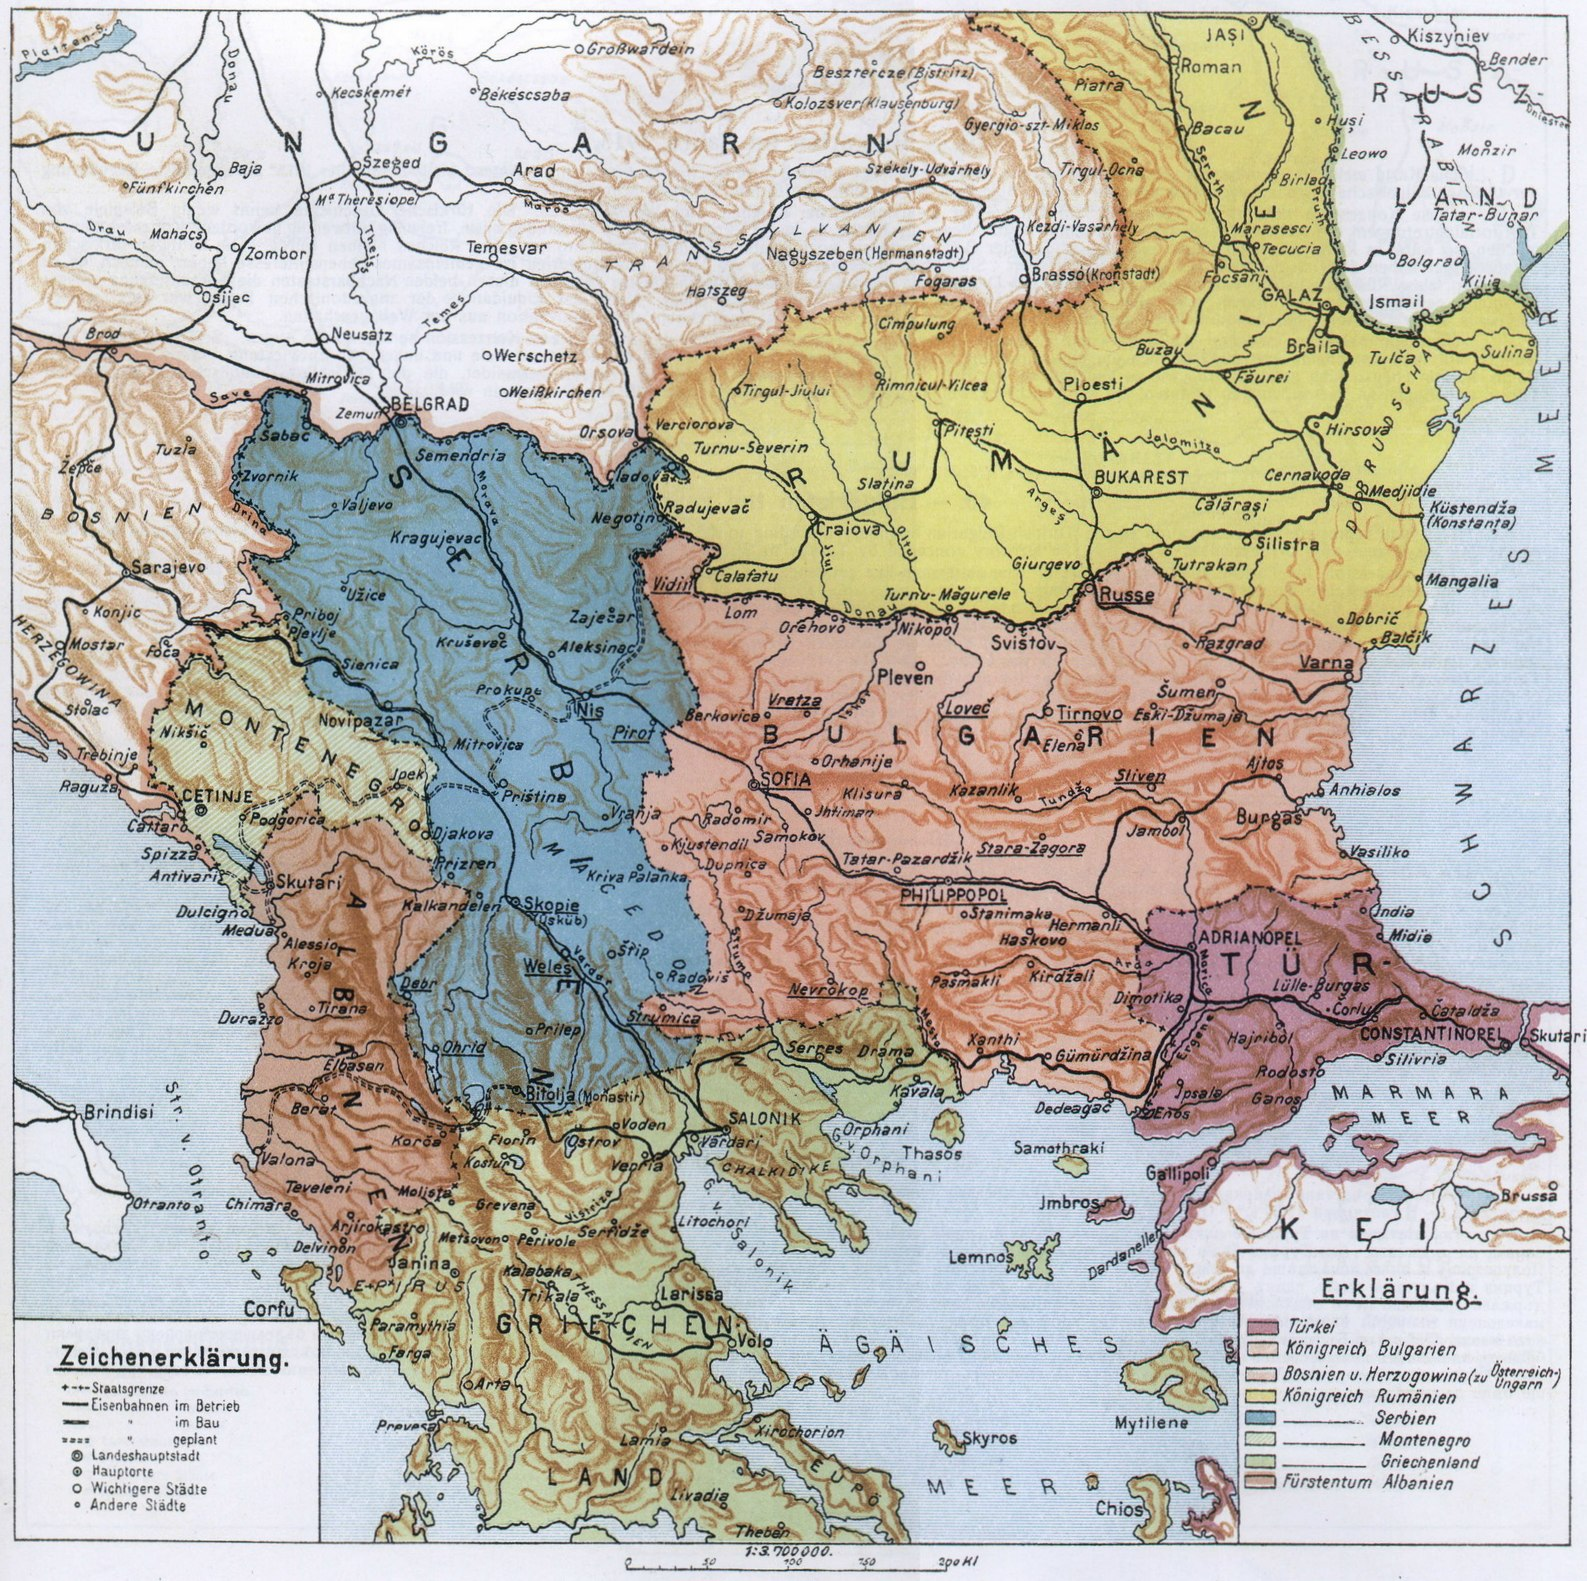 The map as changed by the Balkan wars